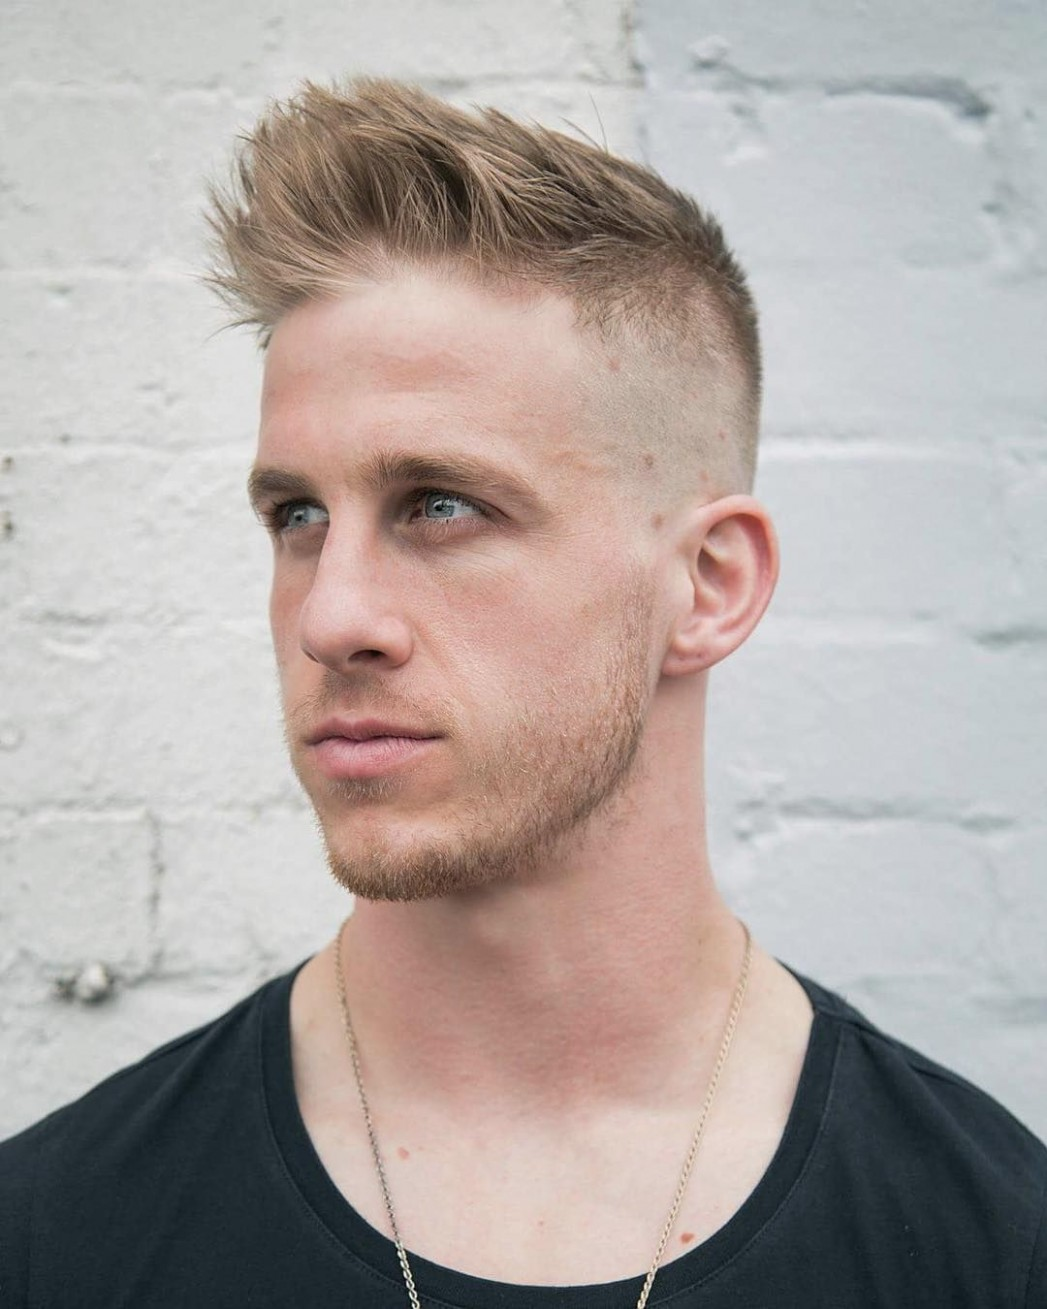 Pin on Awesome Men's Hairstyles Short